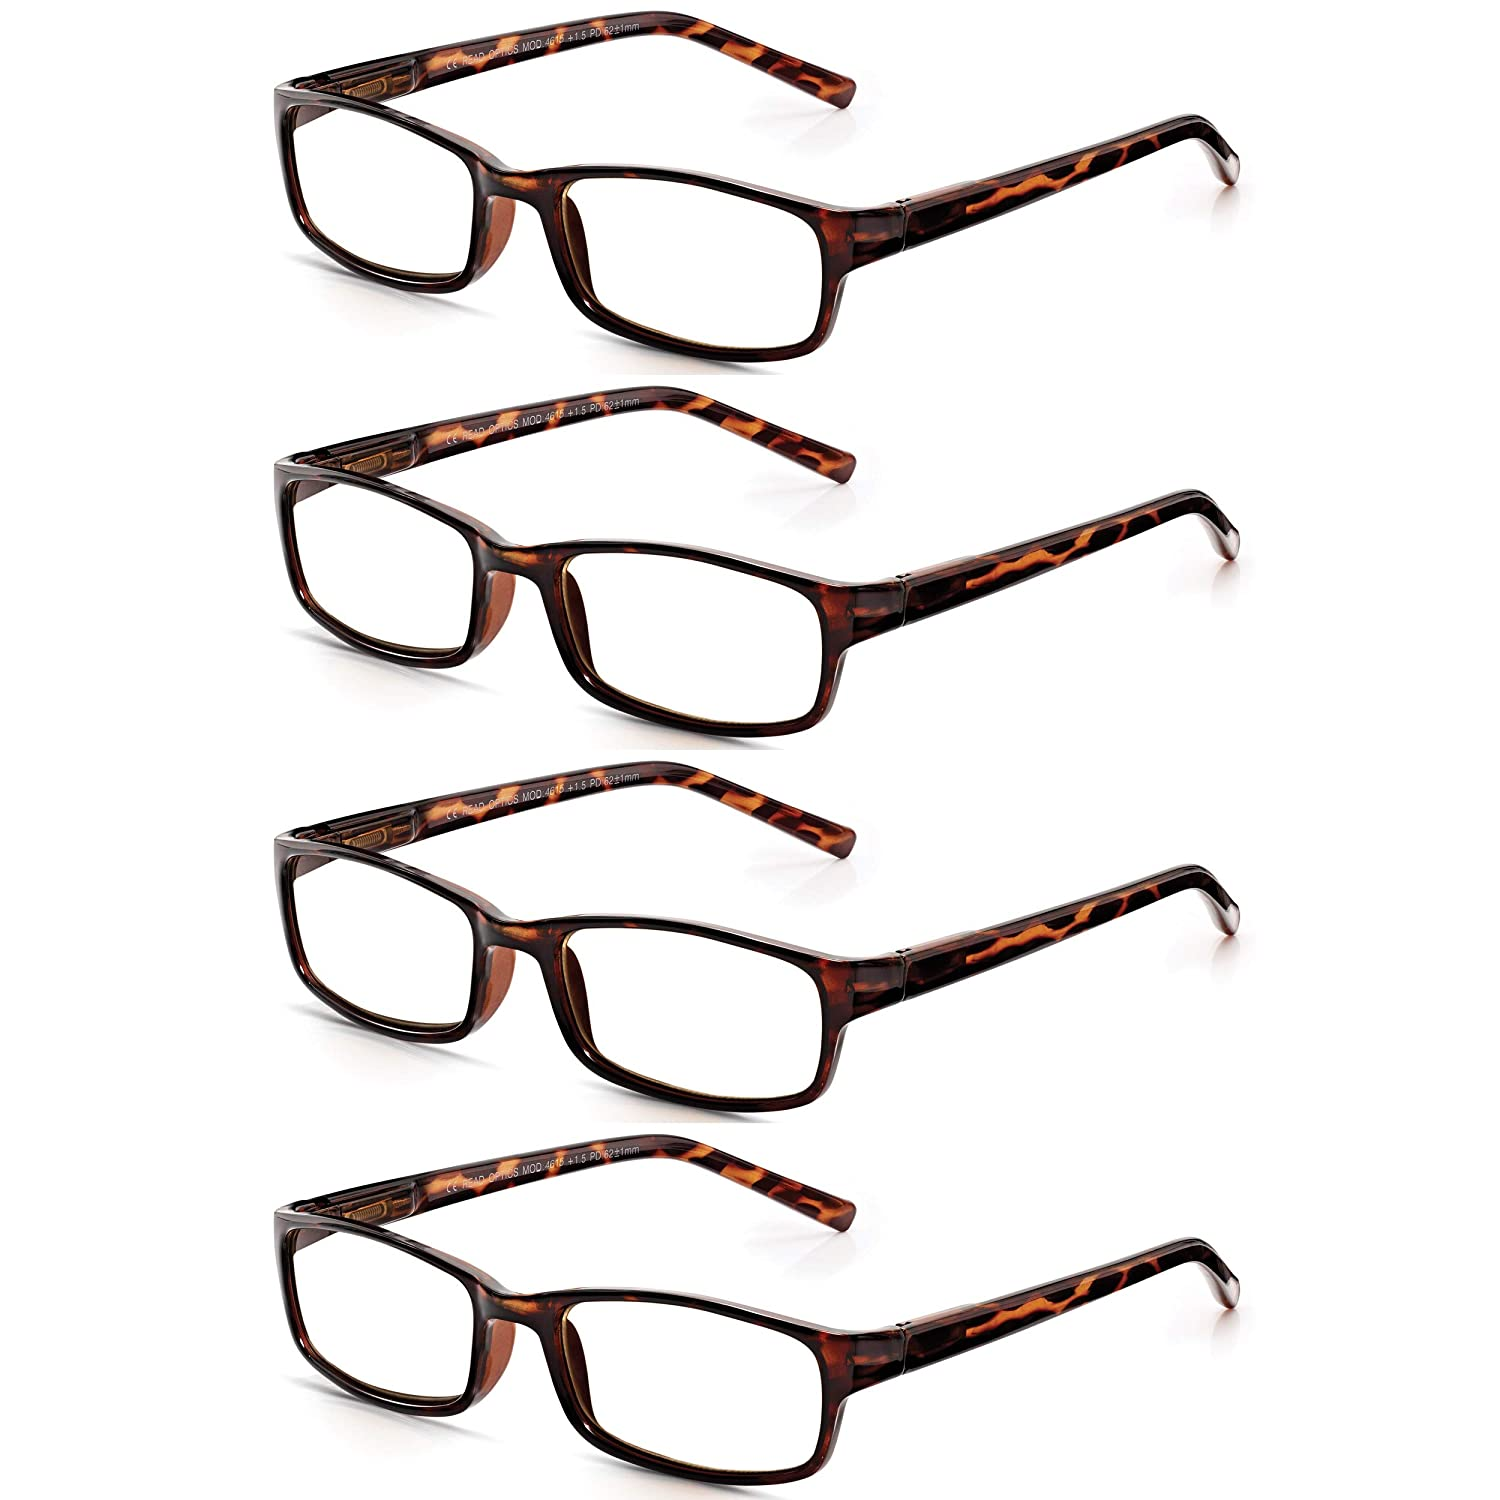 433250b9bb6 Read Optics 4 Pack Stylish Lightweight Mens Womens Reading Glasses in Brown  Tortoiseshell. Non-Prescription Ready Reader Spectacles with True Optical  ...